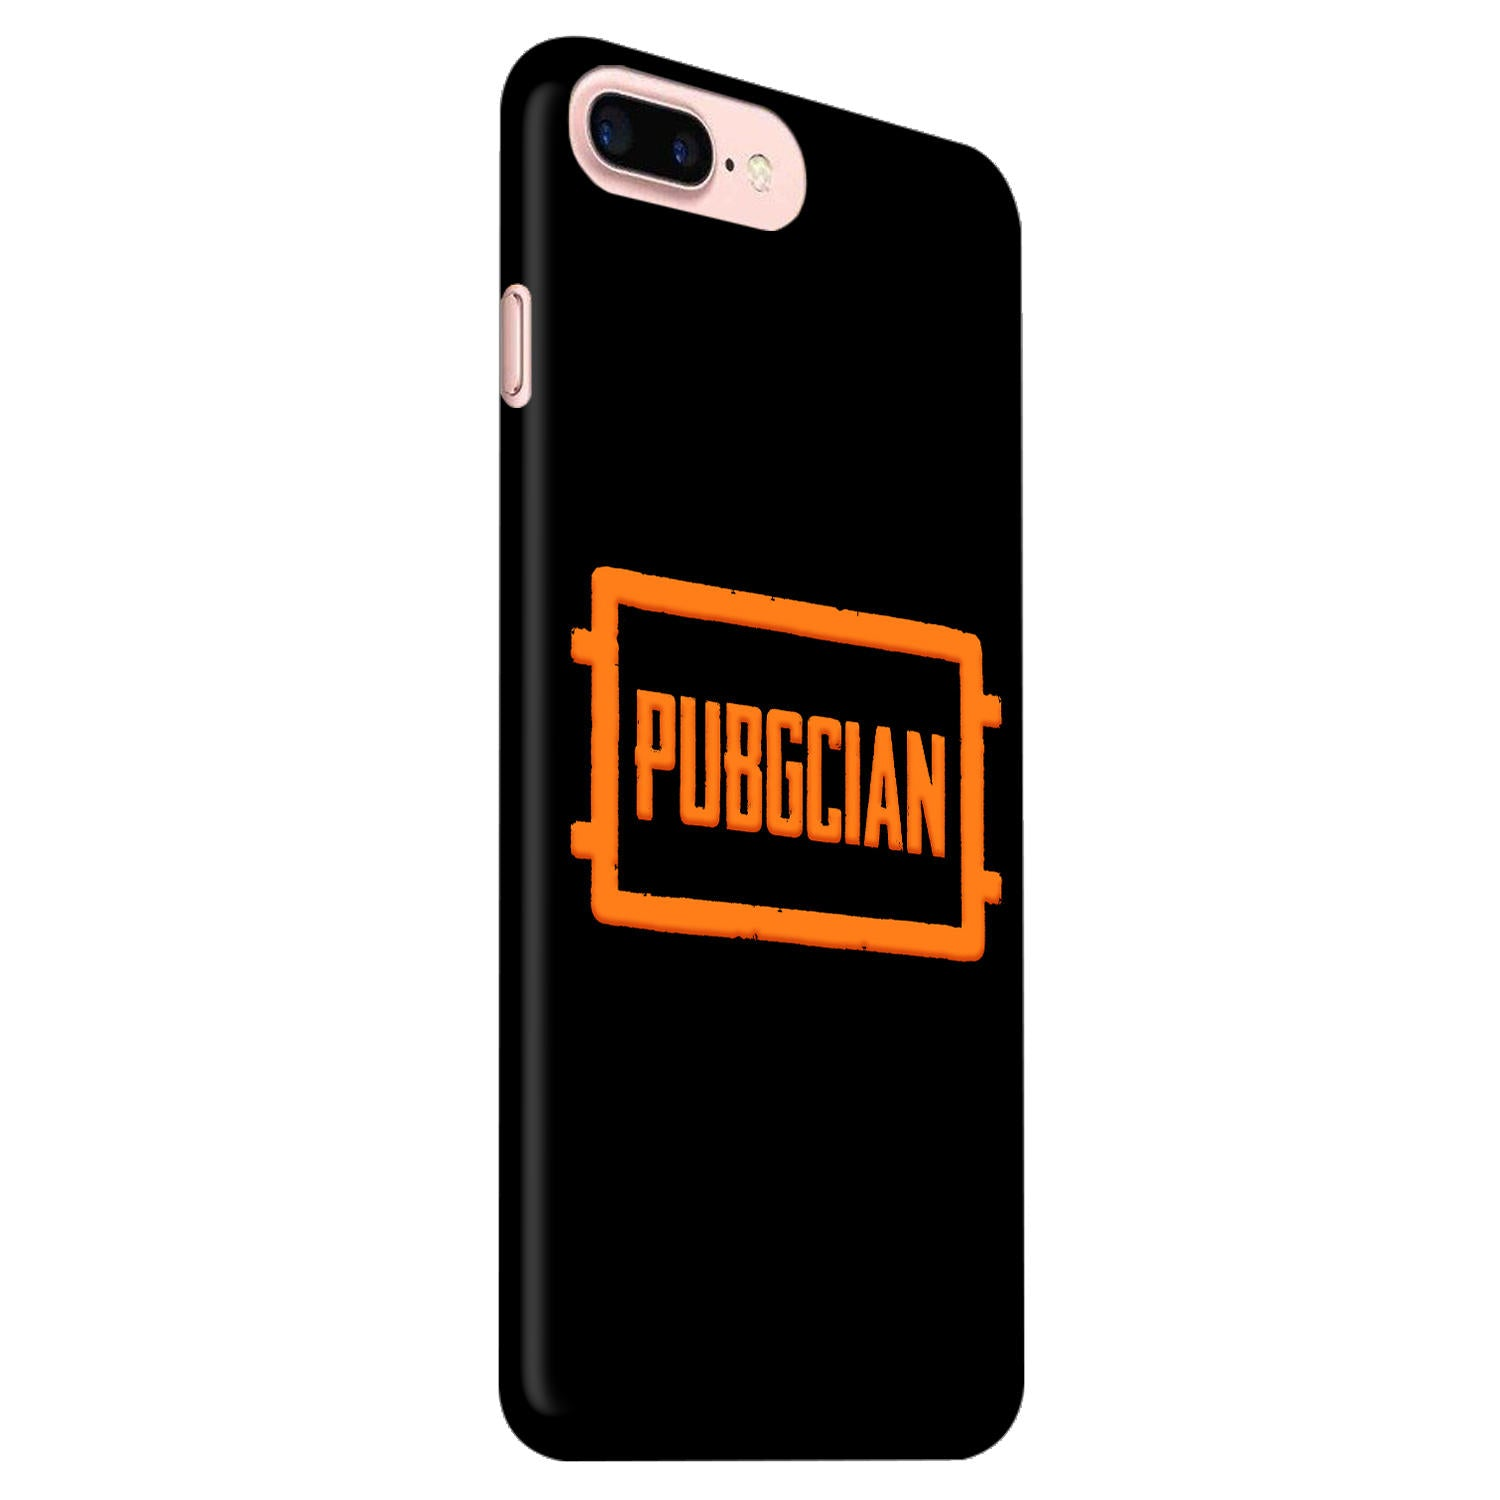 Pubgcian For Game Lovers iPhone 7 Plus Mobile Cover Case - MADANYU